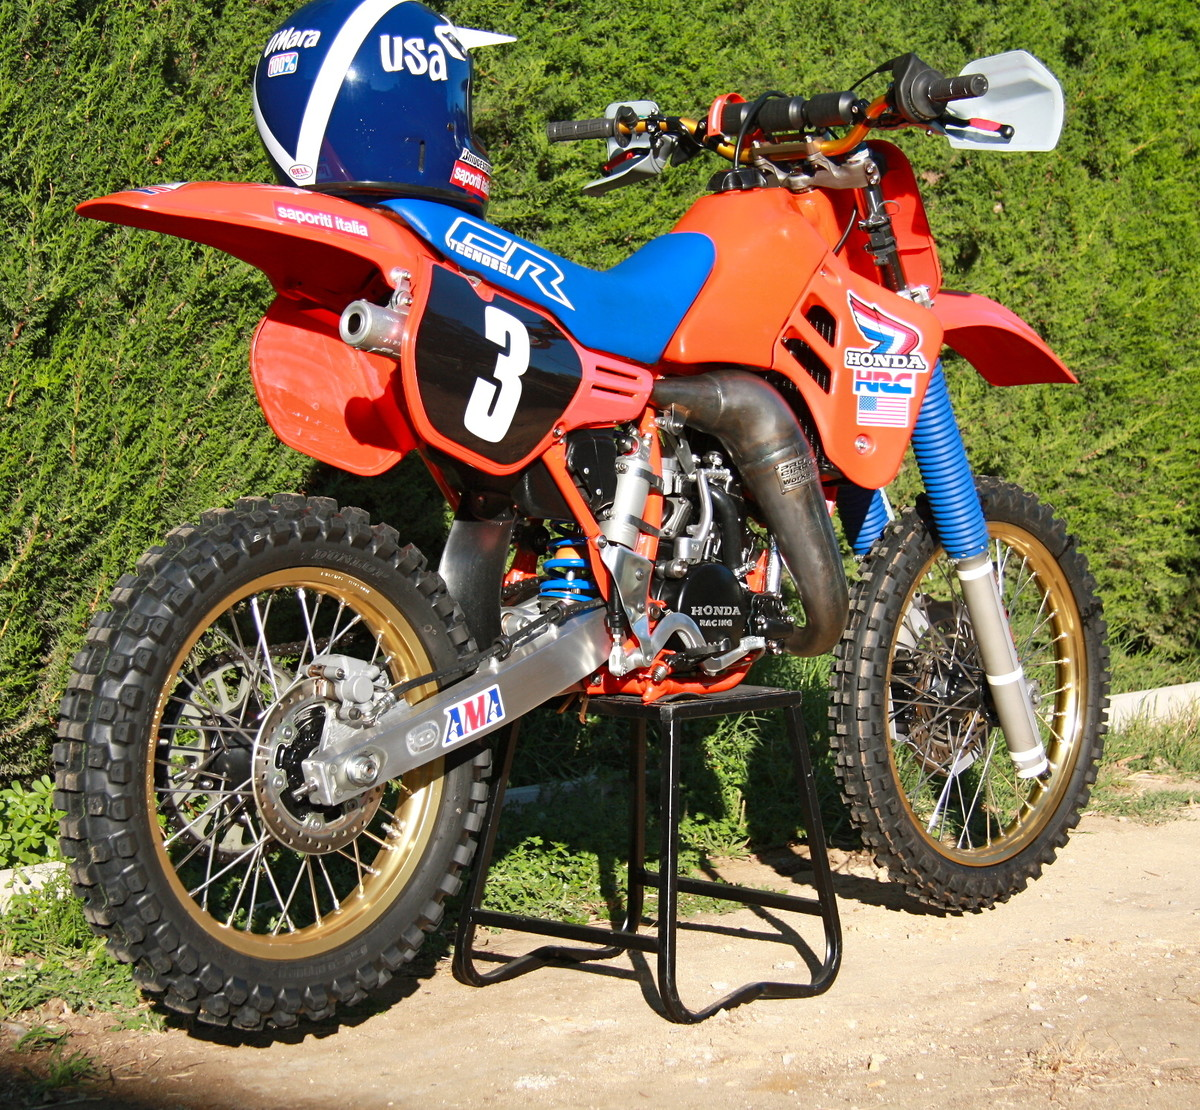 Honda Cr125 1986 Johnny O Mara Mxdn Replica Old School